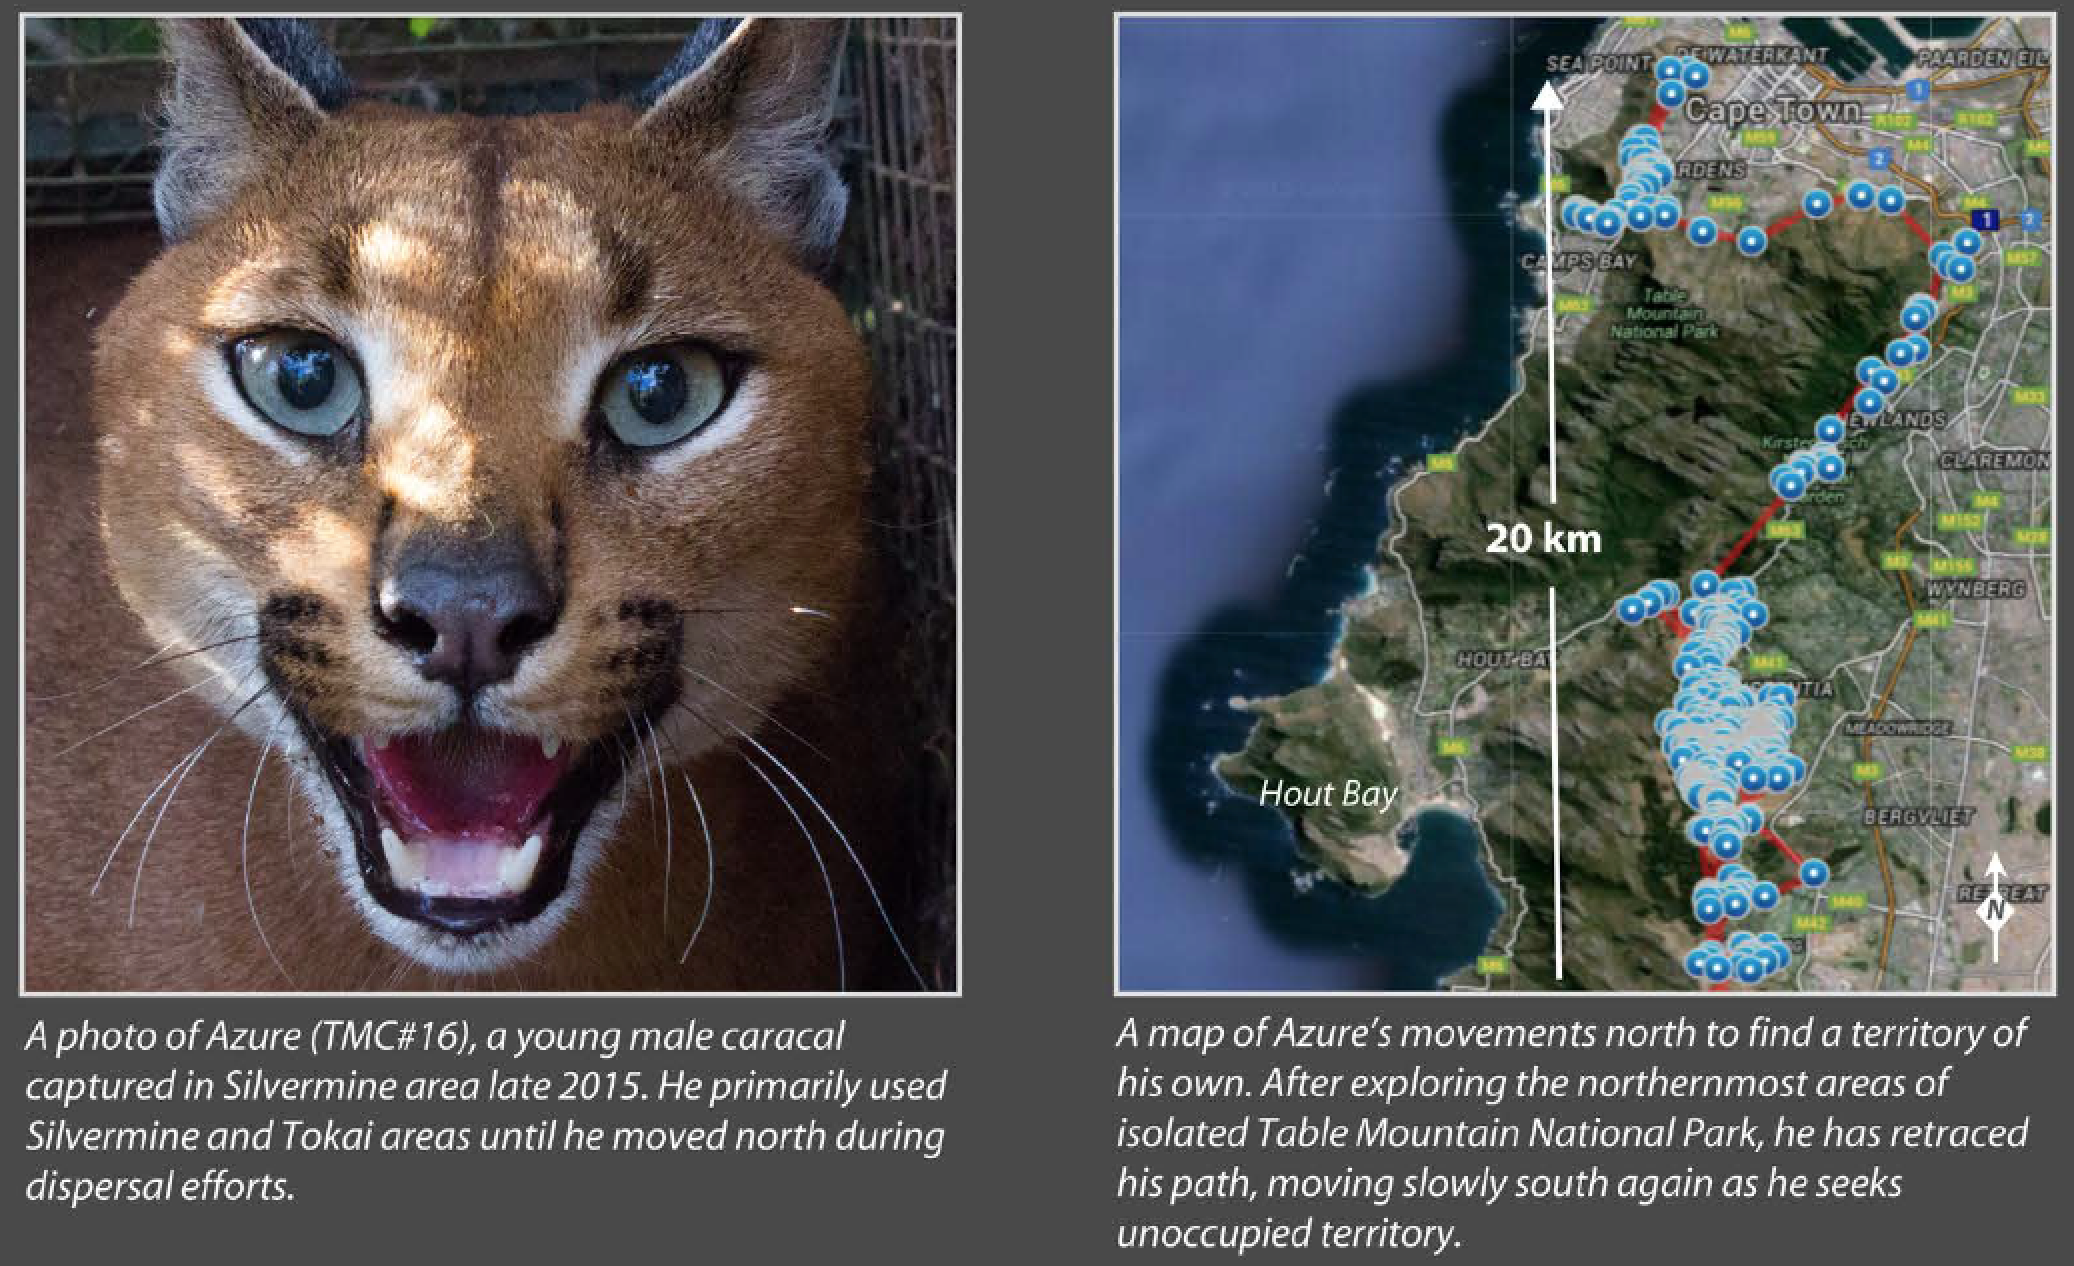 A portion of the infographic we recently published highlighting the dispersal behaviors of Tyger and Azure.